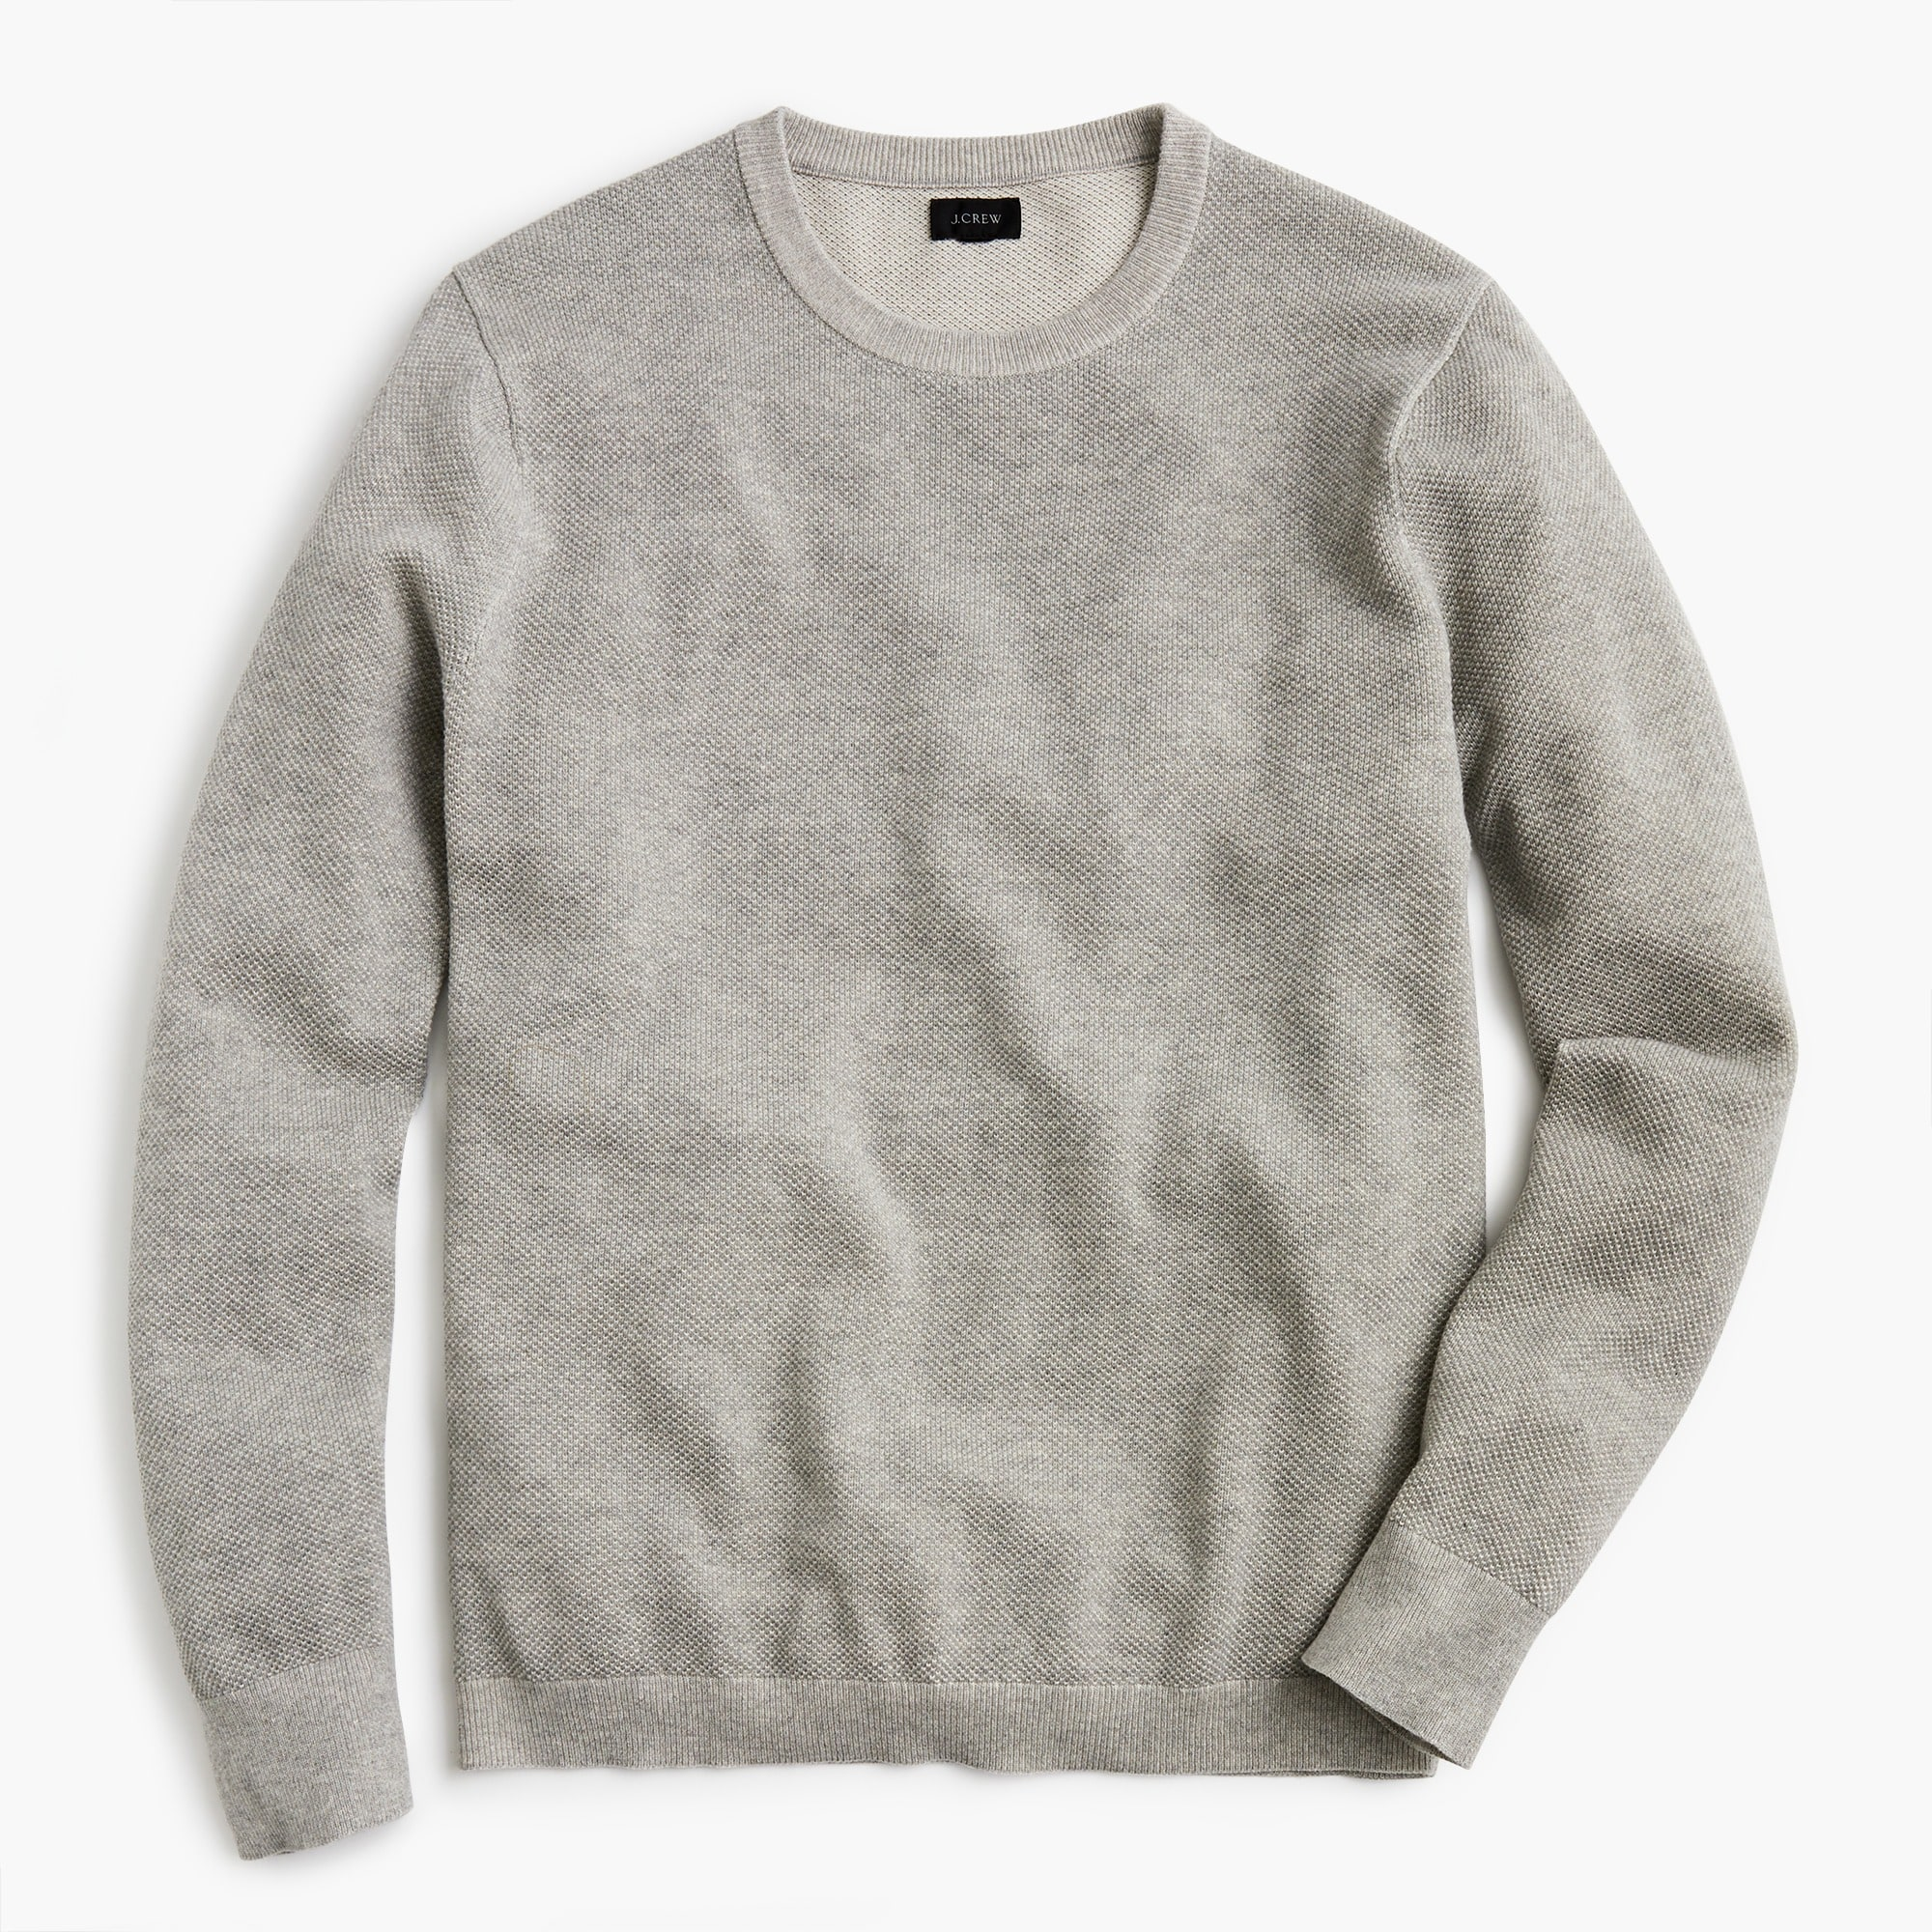 Image 1 for Cotton plaited texture crewneck sweater